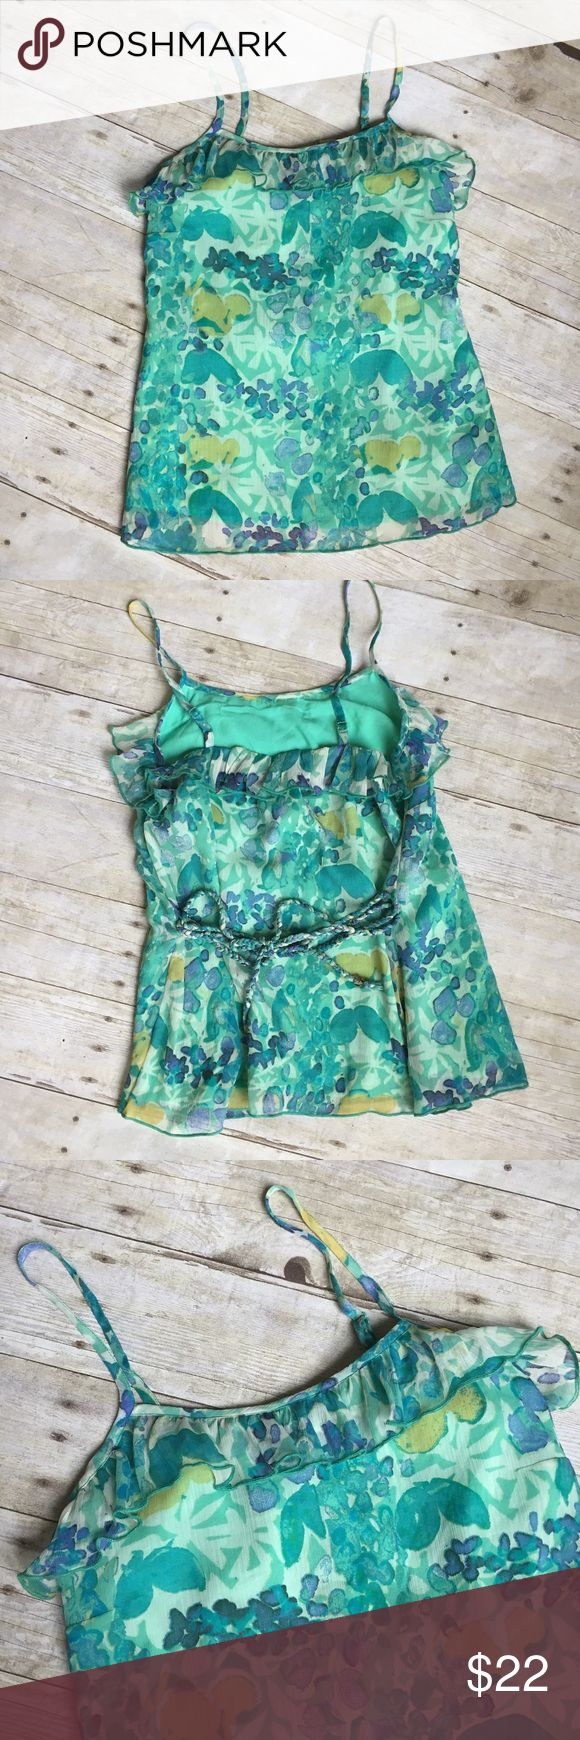 Jessica Simpson Floral Green Cami Tank Blouse NWT Jessica Simpson Floral Green Cami Tank Blouse - NEW with tags. Pretty green/blue/yellow Floral pattern. Ruffle at the top and braided rope tie at the waist. Size x-small. Top Floral layer is sheer with a solid green lining. 100% polyester. Jessica Simpson Tops